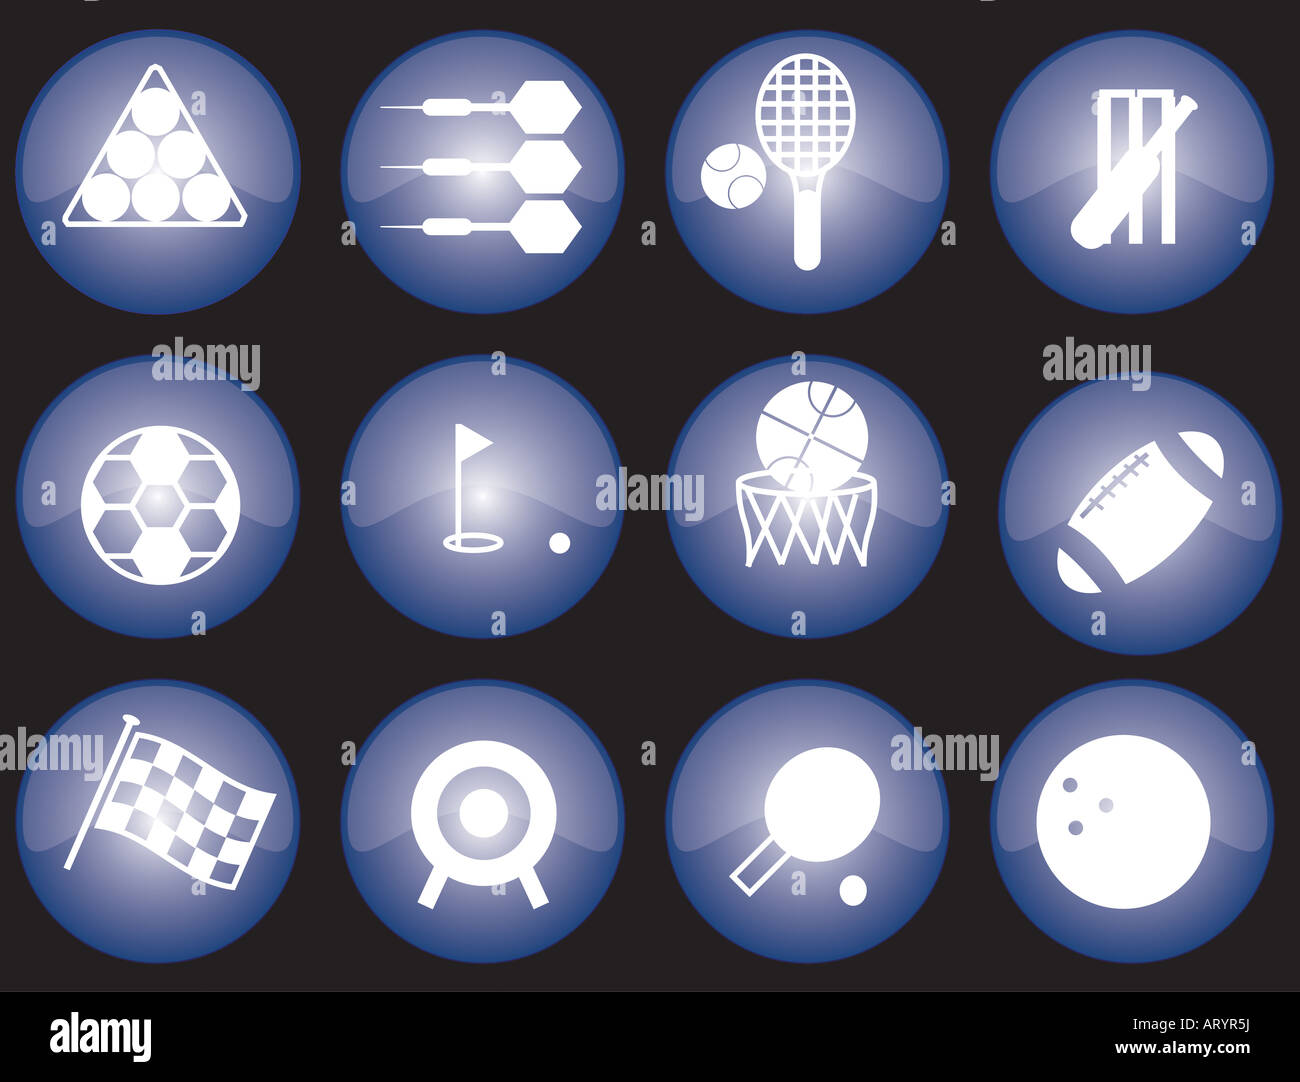 Assorted blue glazed sports icons and buttons - Stock Image